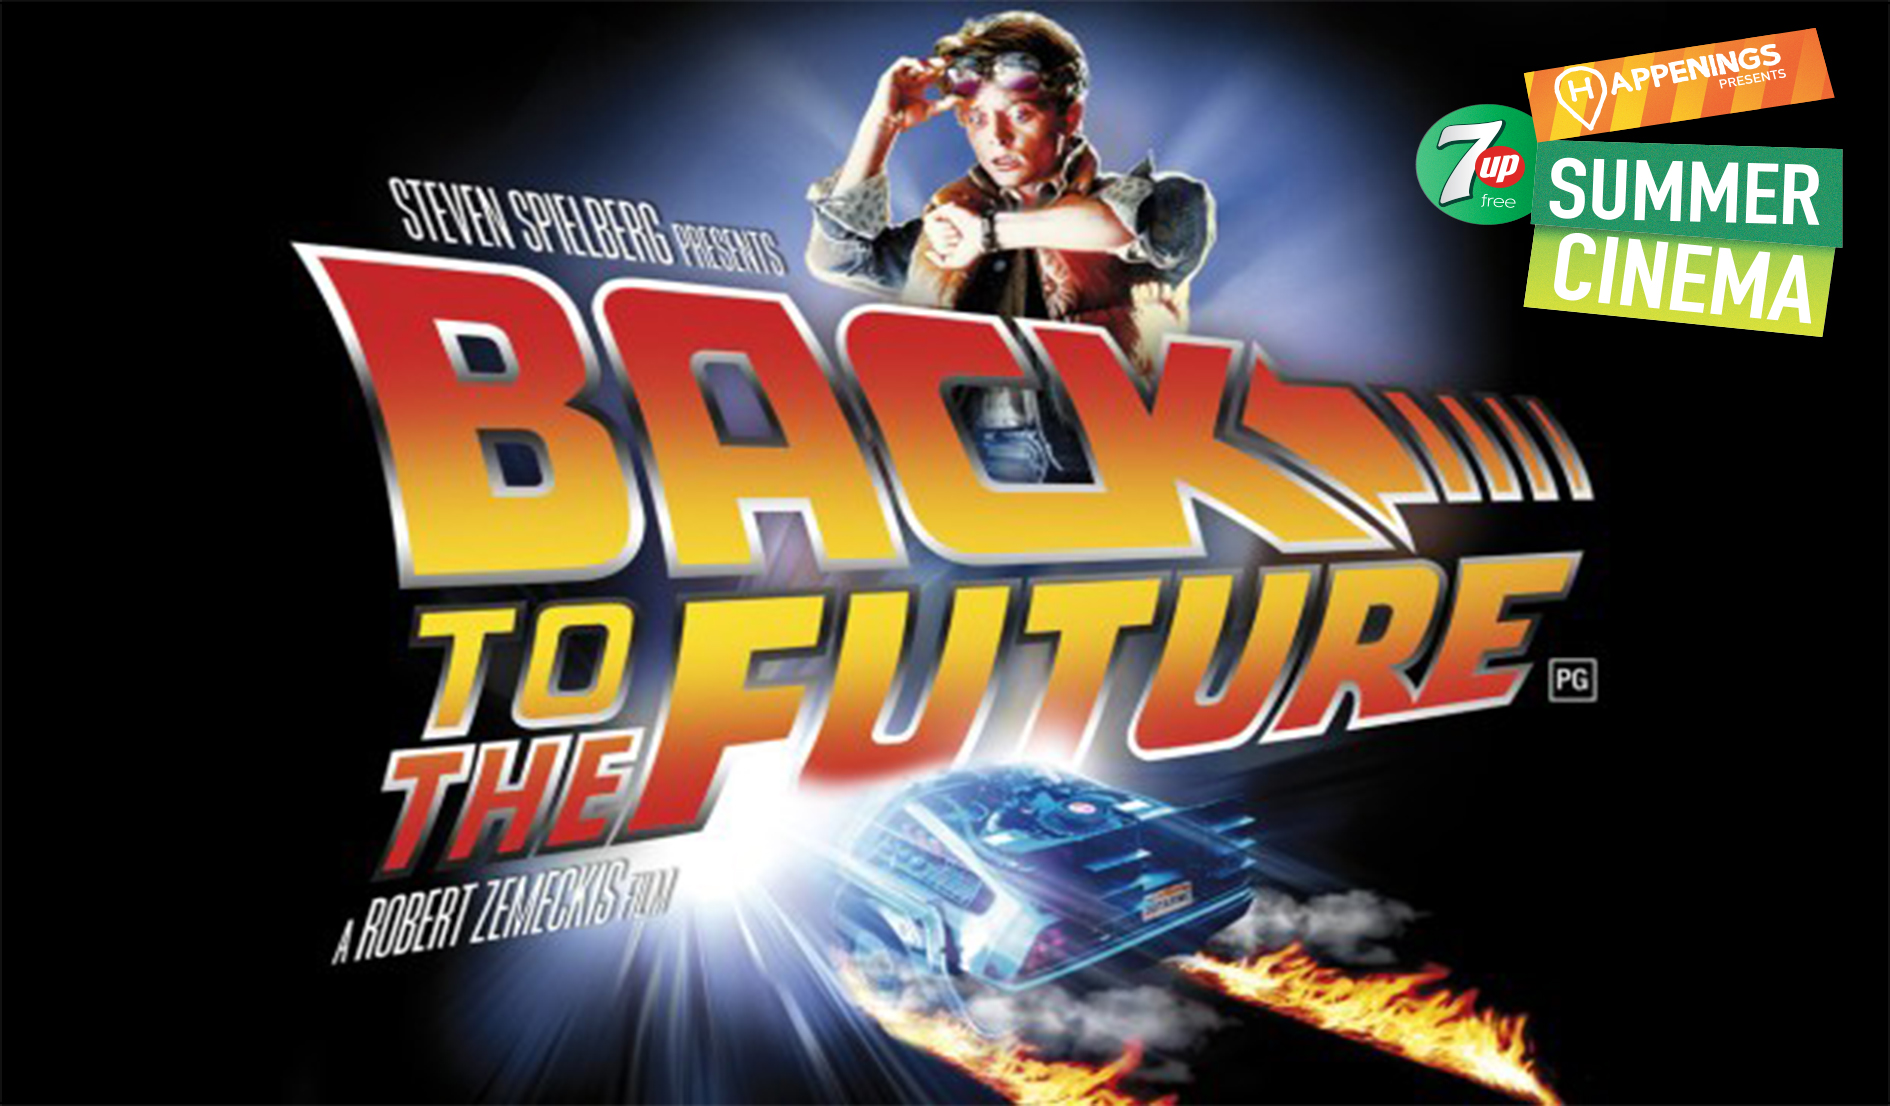 Back to the future 7up image